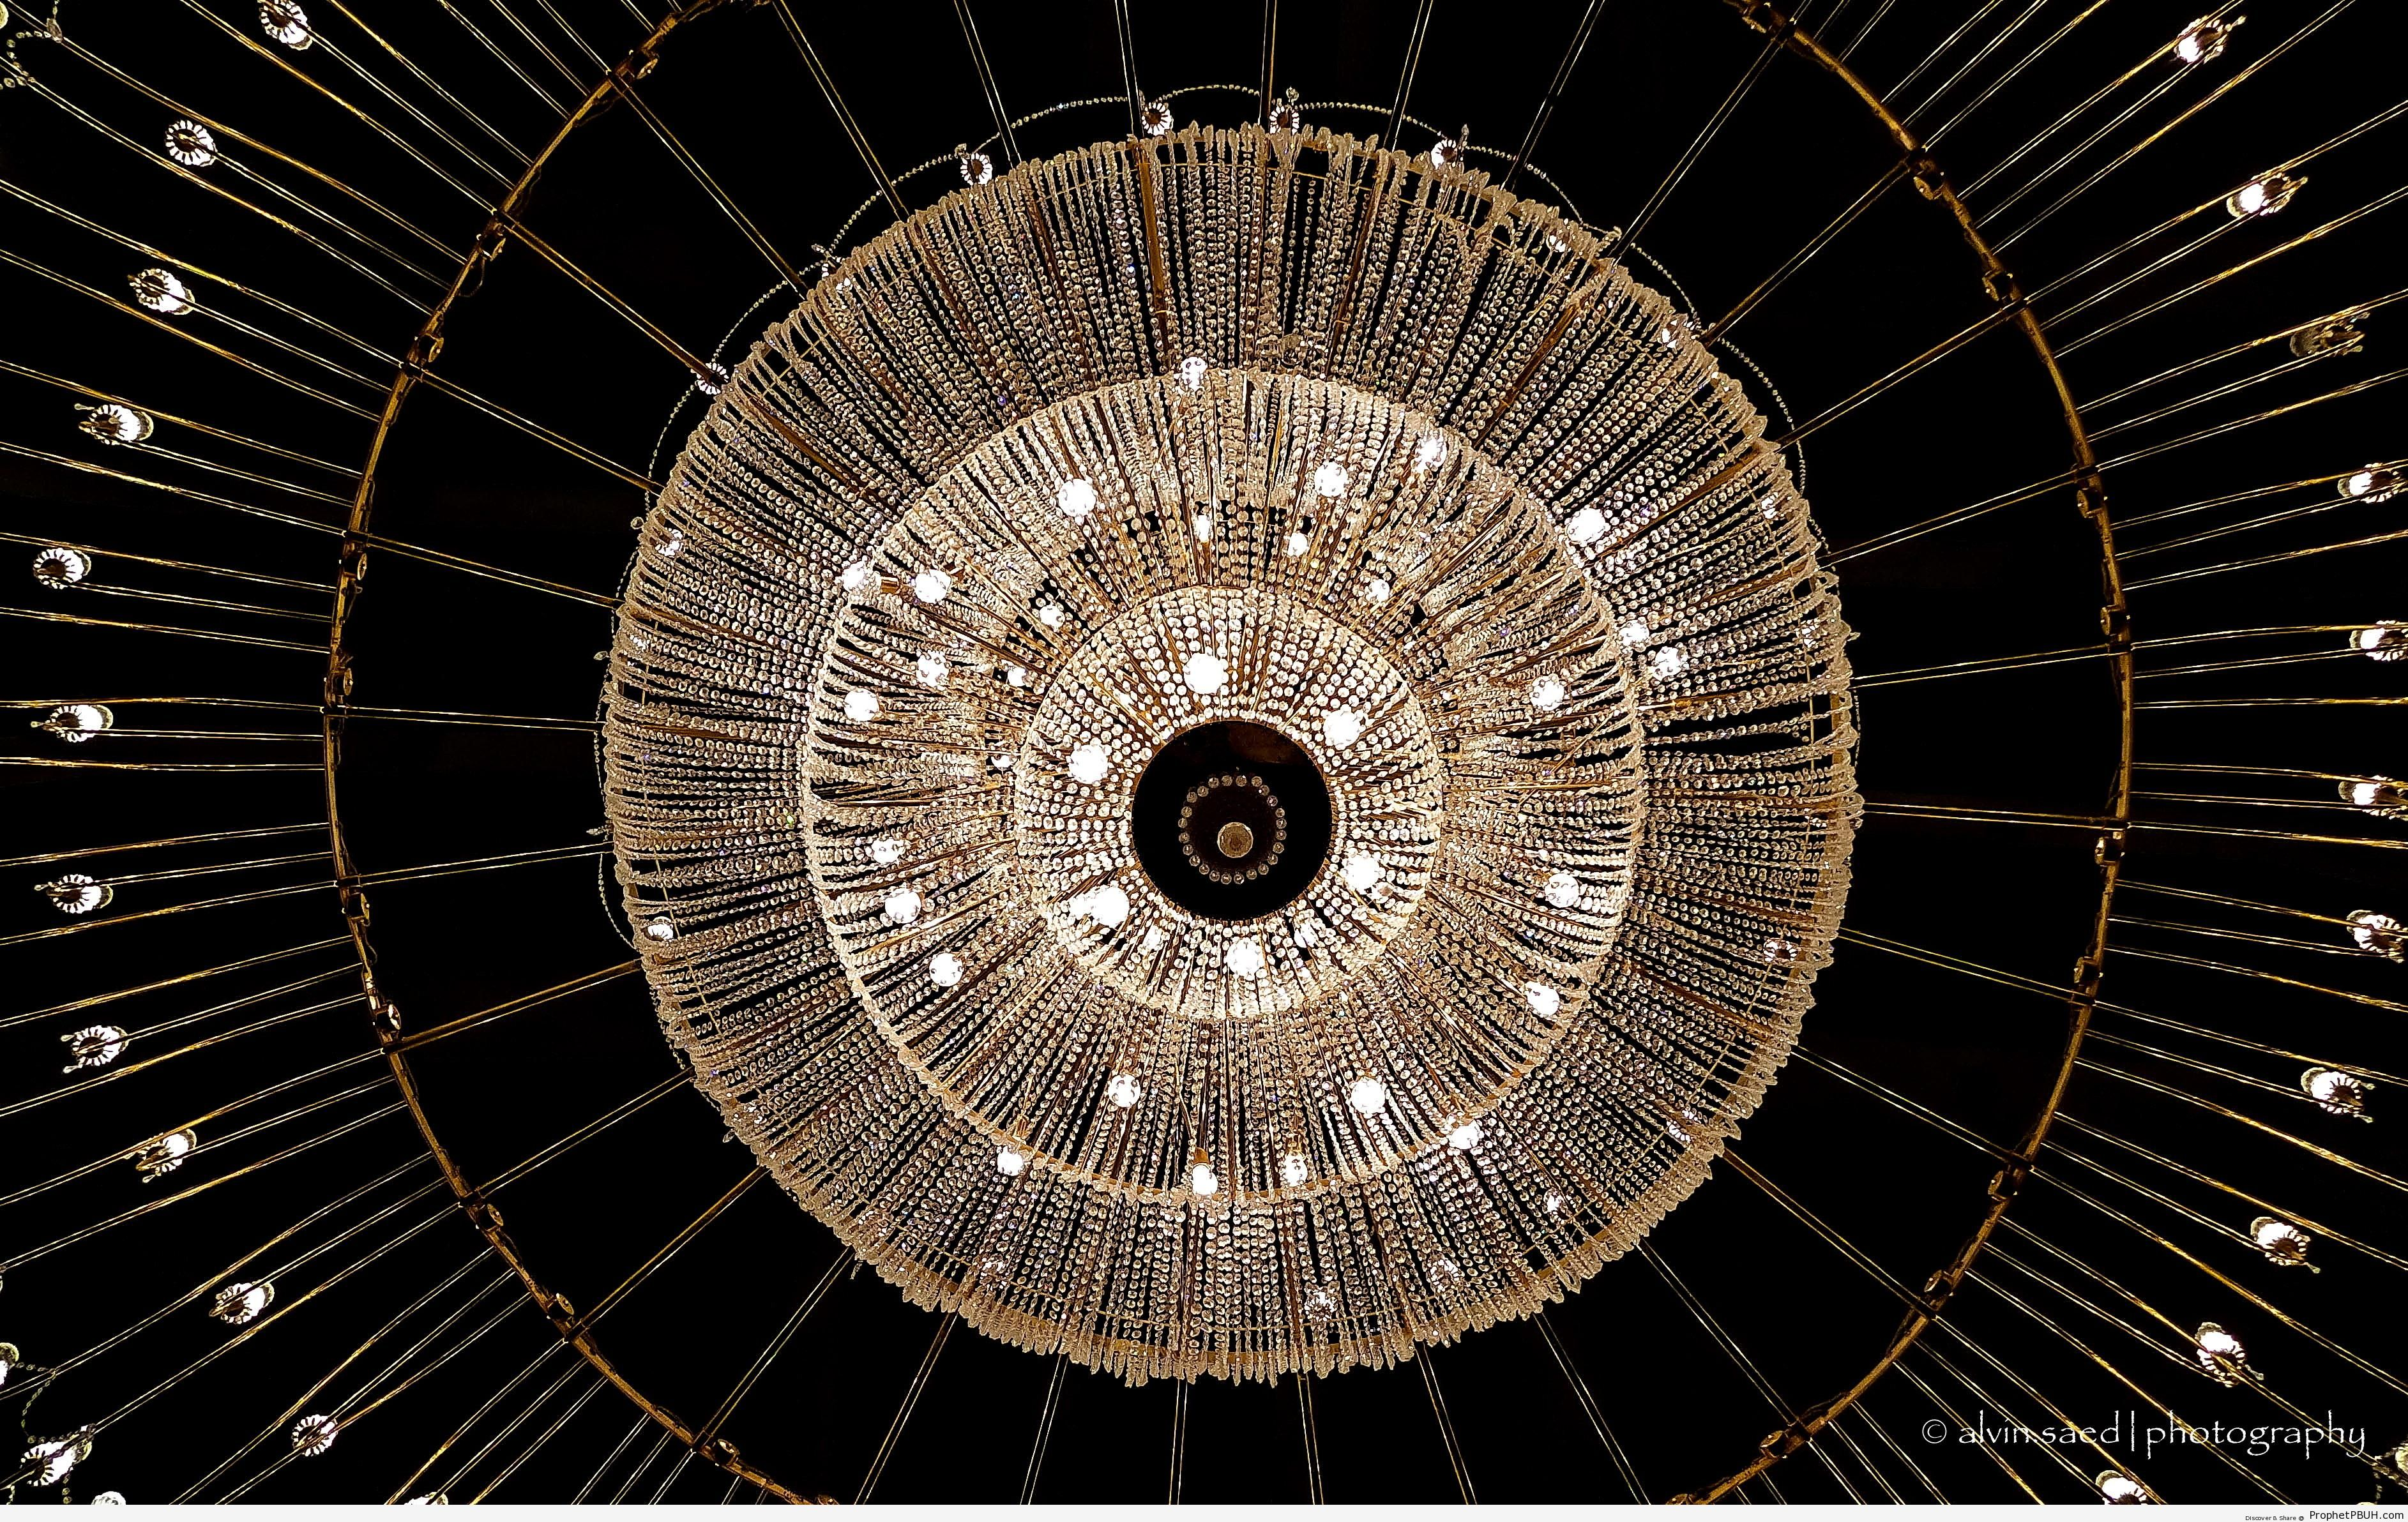 Chandelier at the Mosque of Aisha (RA) in Makkah, Saudi Arabia - Artist- Alvin A. Saed -Picture